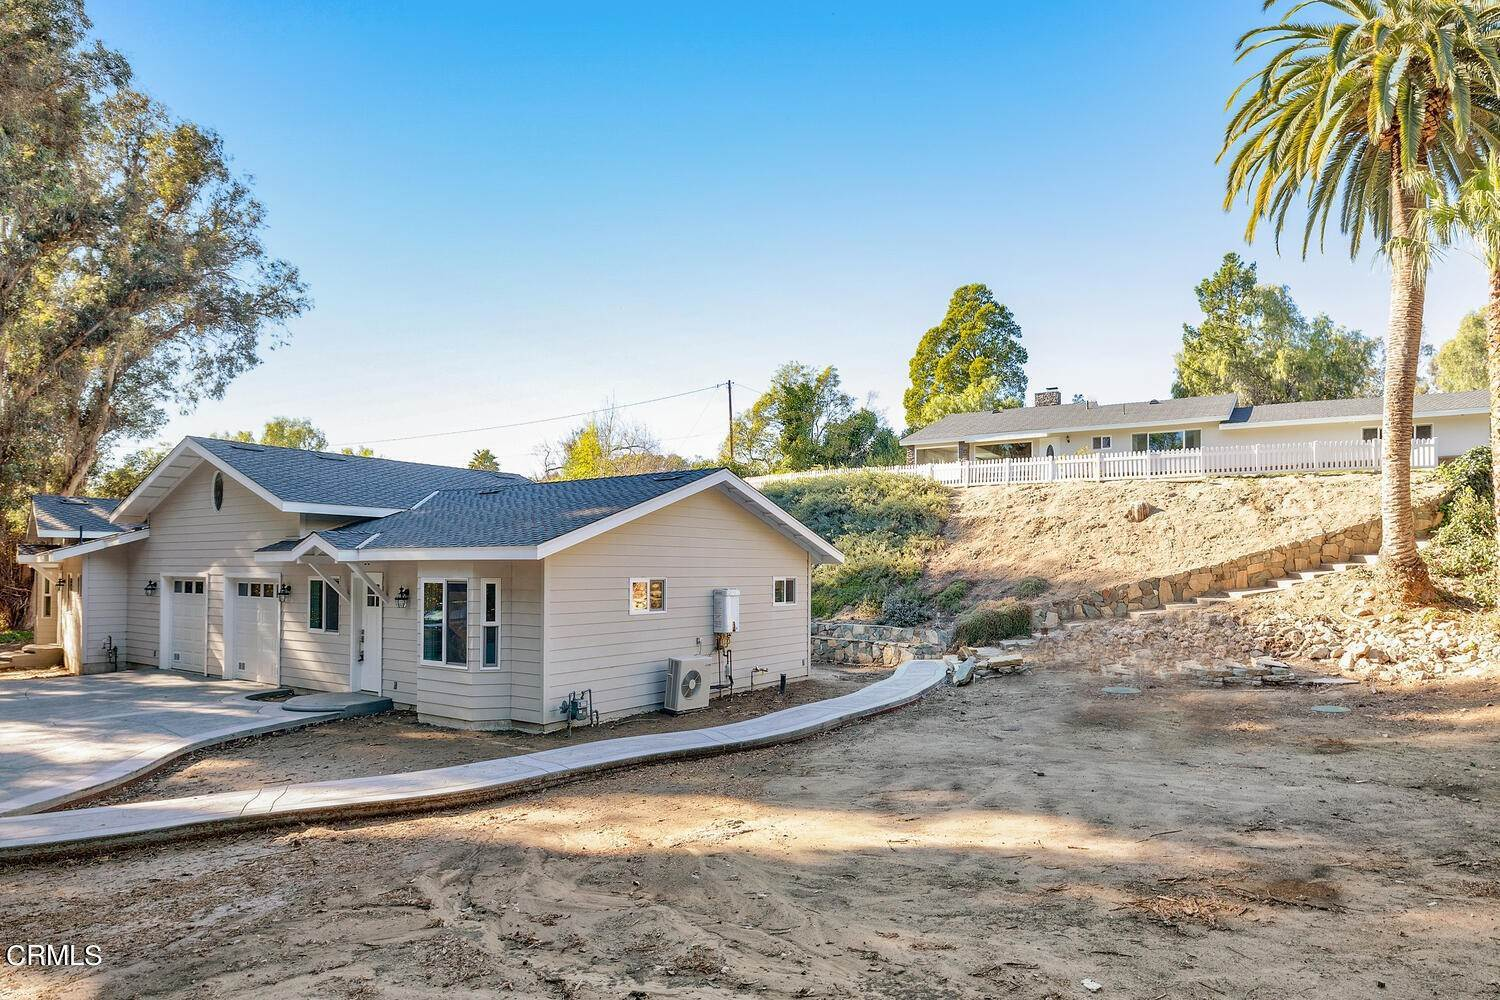 28. Single Family Homes for Sale at 39 - 41 Ramona Place Camarillo, California 93010 United States